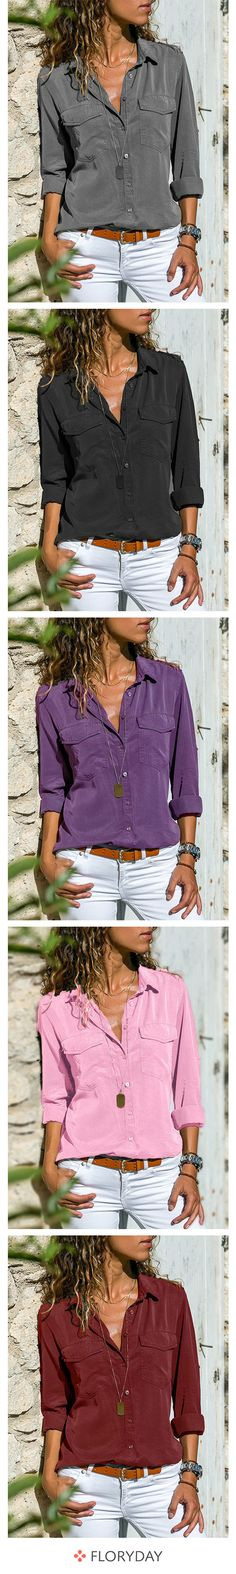 Casual blouses with a collar and long sleeves – Mode – Lässige Blusen mit Kragen und langen. Summer Fashion Outfits, Cute Fashion, Fall Outfits, Casual Outfits, Fashion Looks, Womens Fashion, Fashion Trends, Burgundy Bridesmaid Dresses Long, Maid Of Honour Dresses